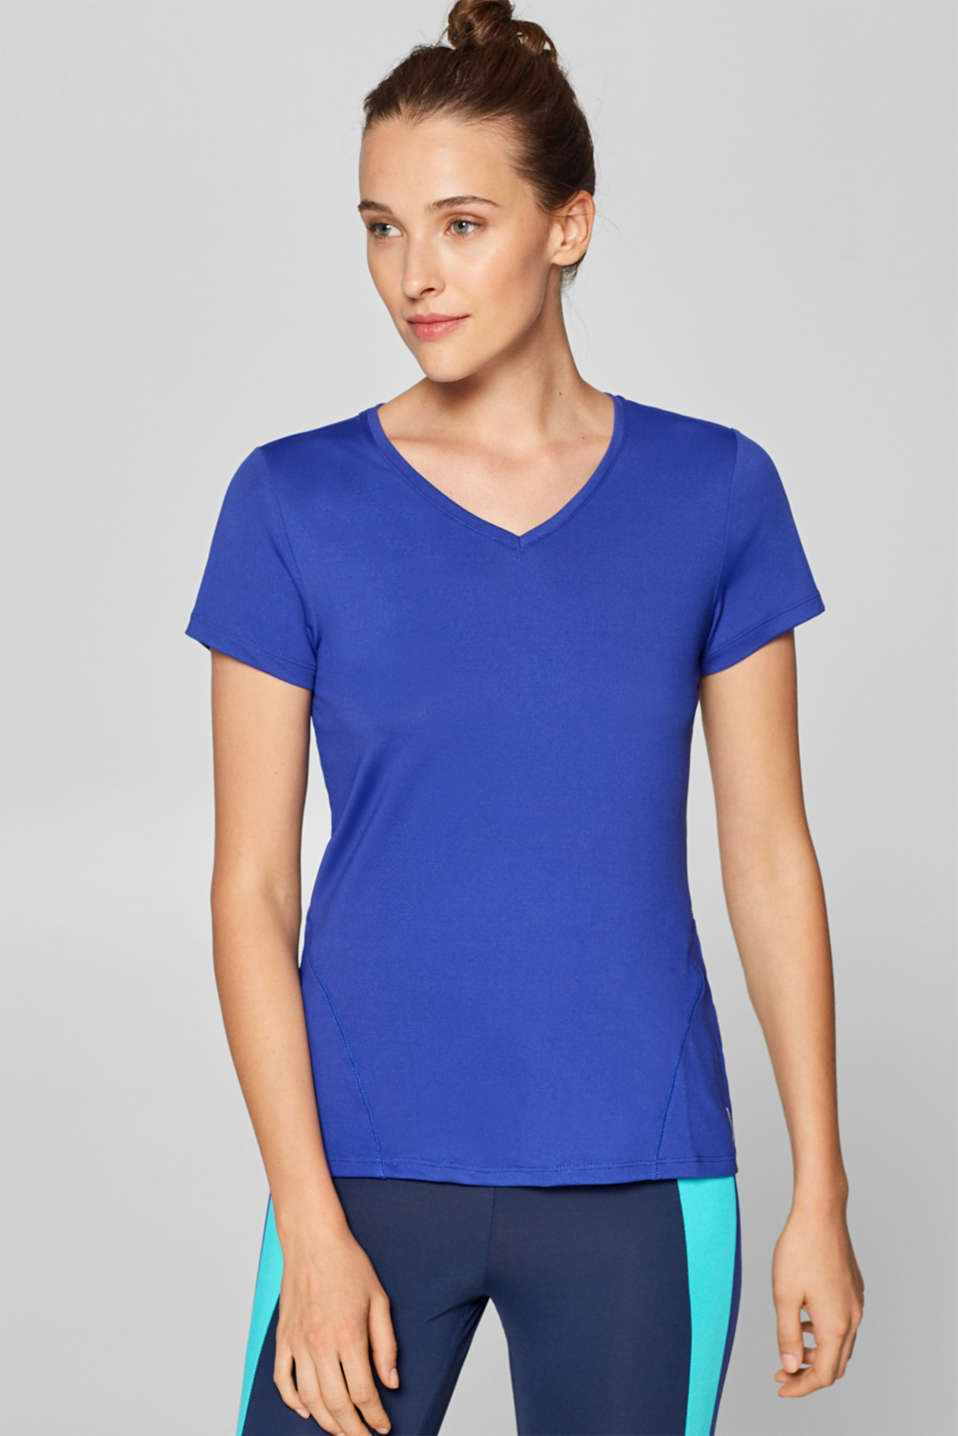 Esprit - High-performance T-shirt with neon piping, E-DRY